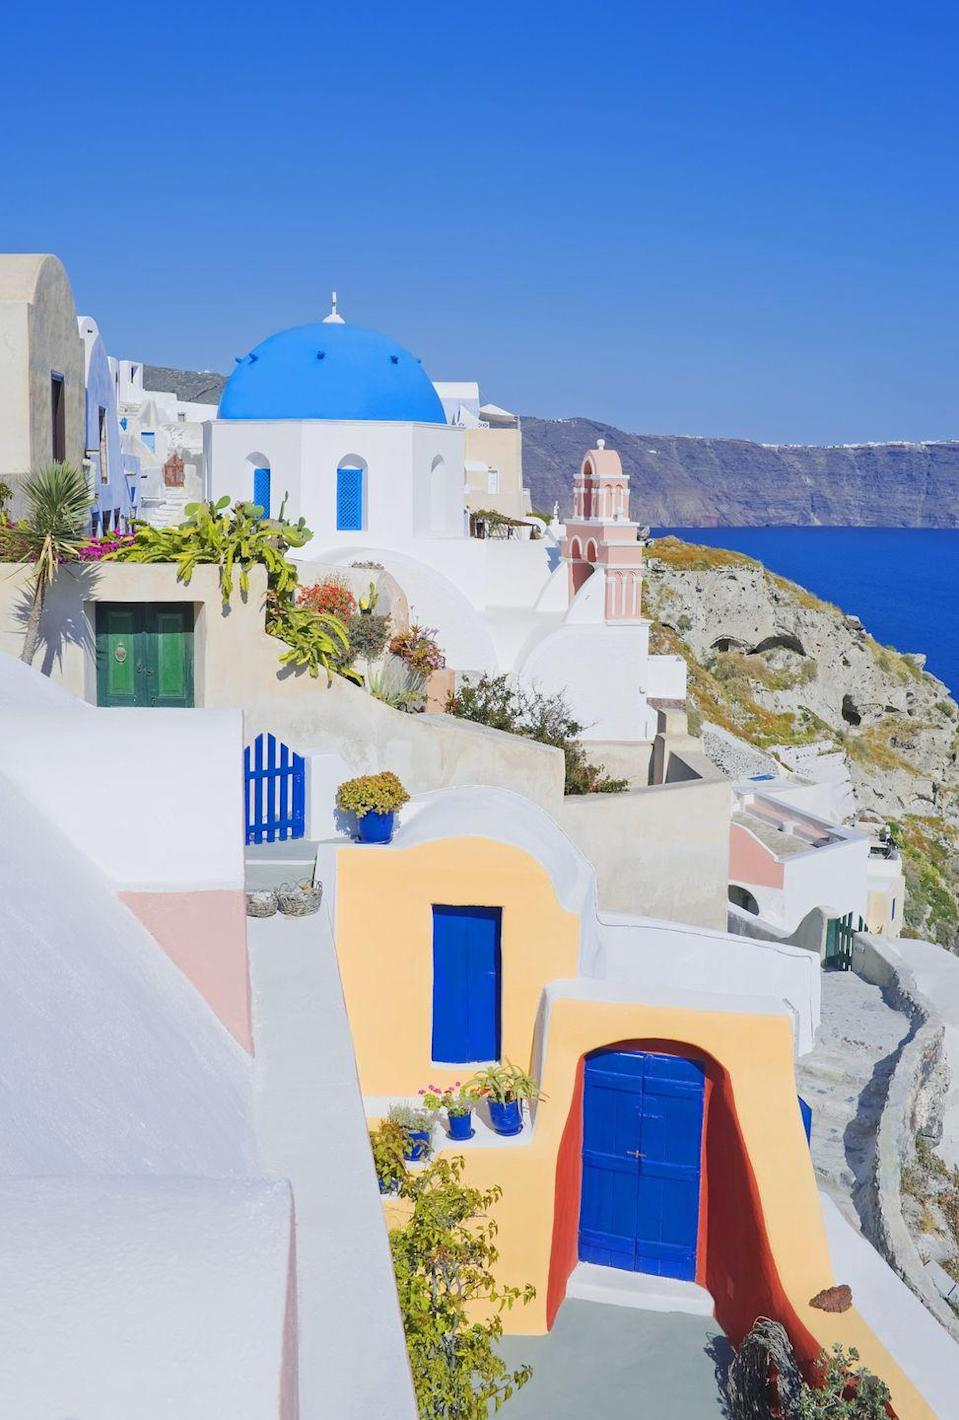 <p>A pop of Creamsicle orange is a pleasant surprise along the all-white streets of Santorini. </p>